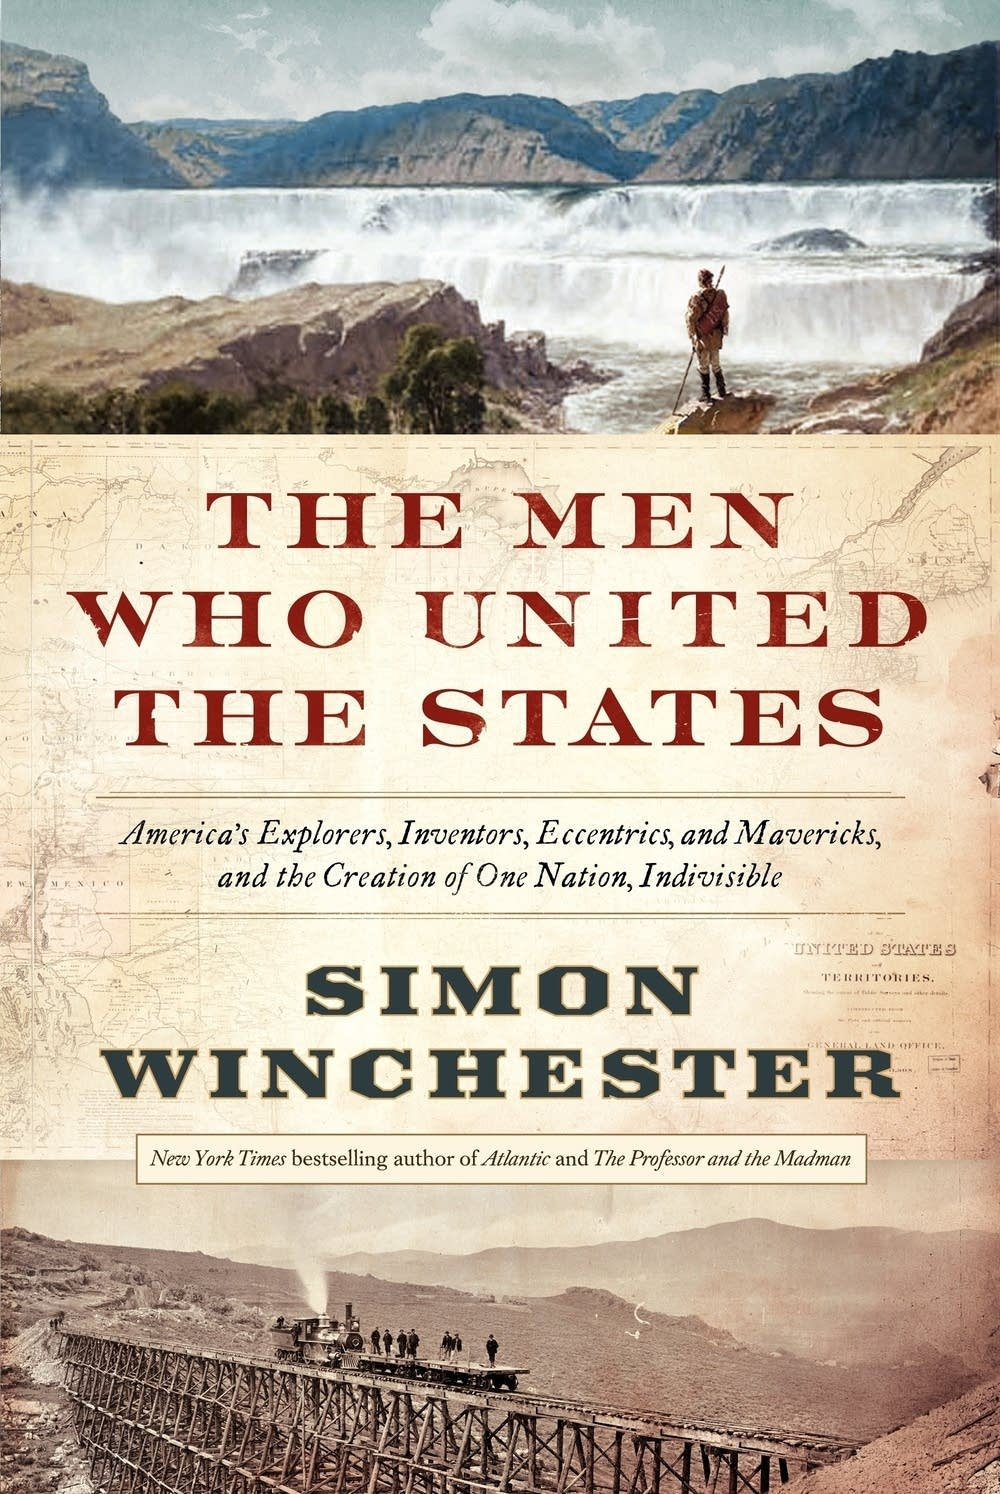 'The Men Who United the States'